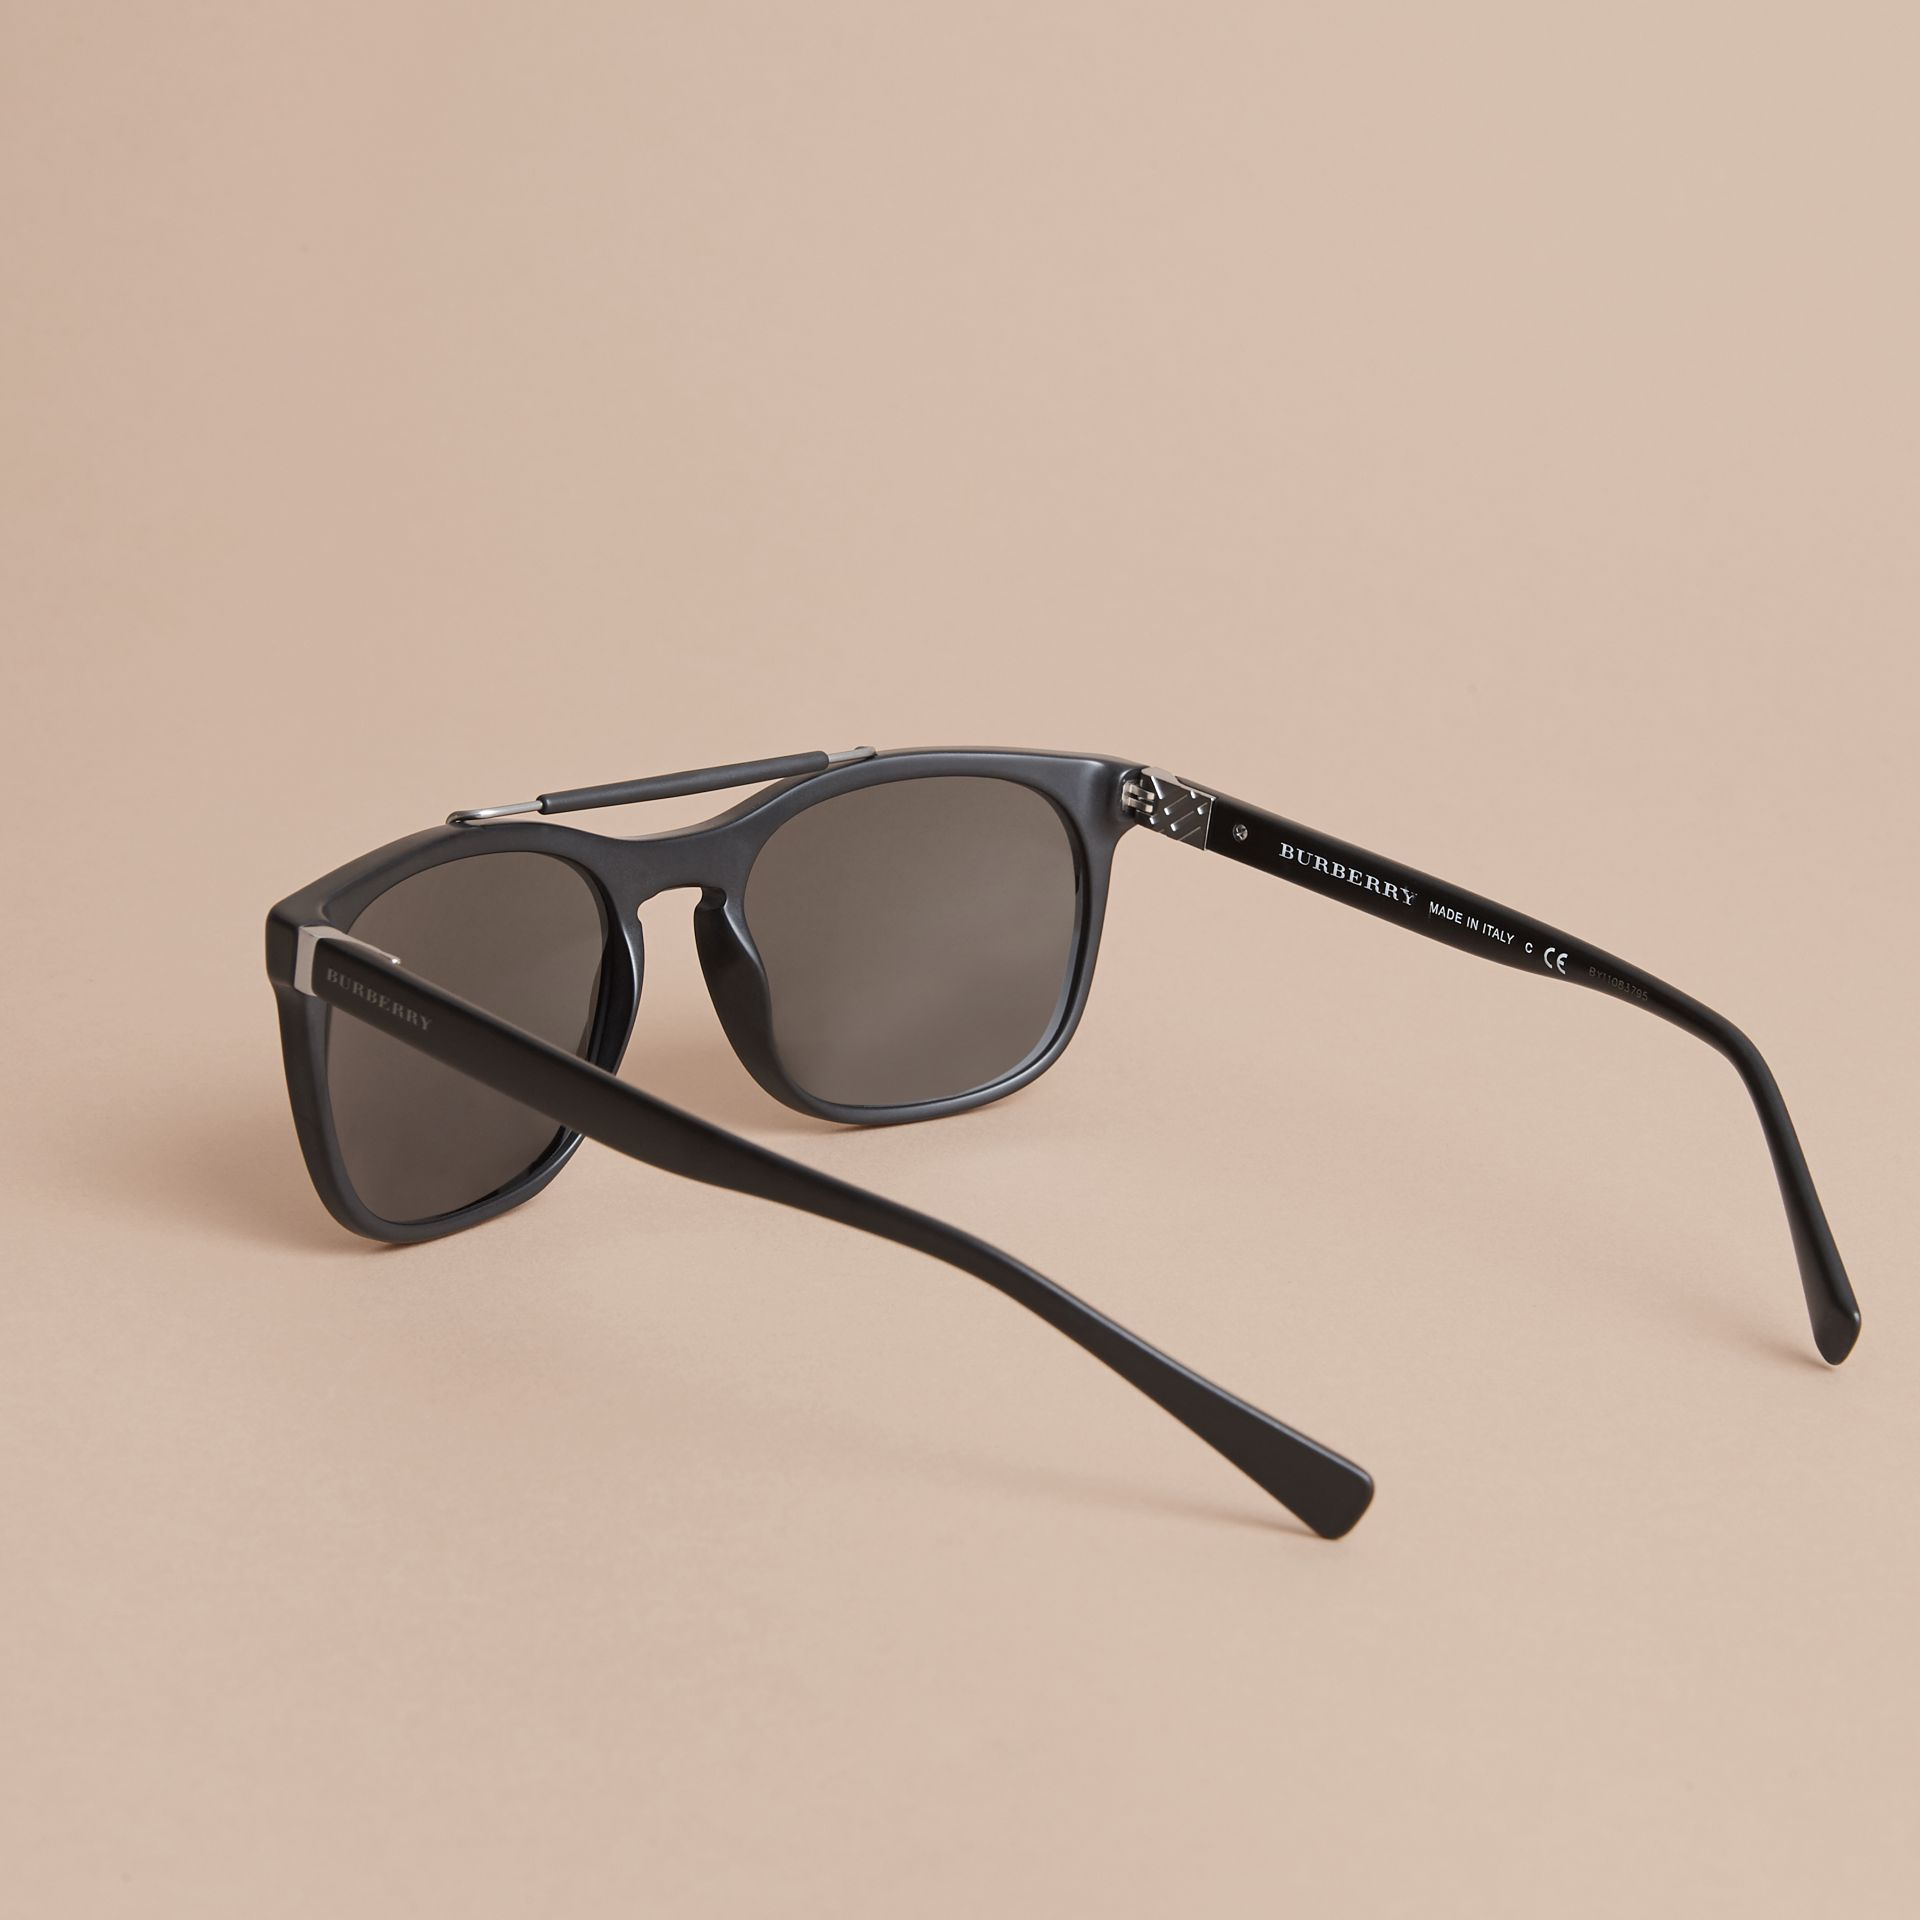 Top Bar Square Frame Sunglasses in Black - Men | Burberry Singapore - gallery image 4